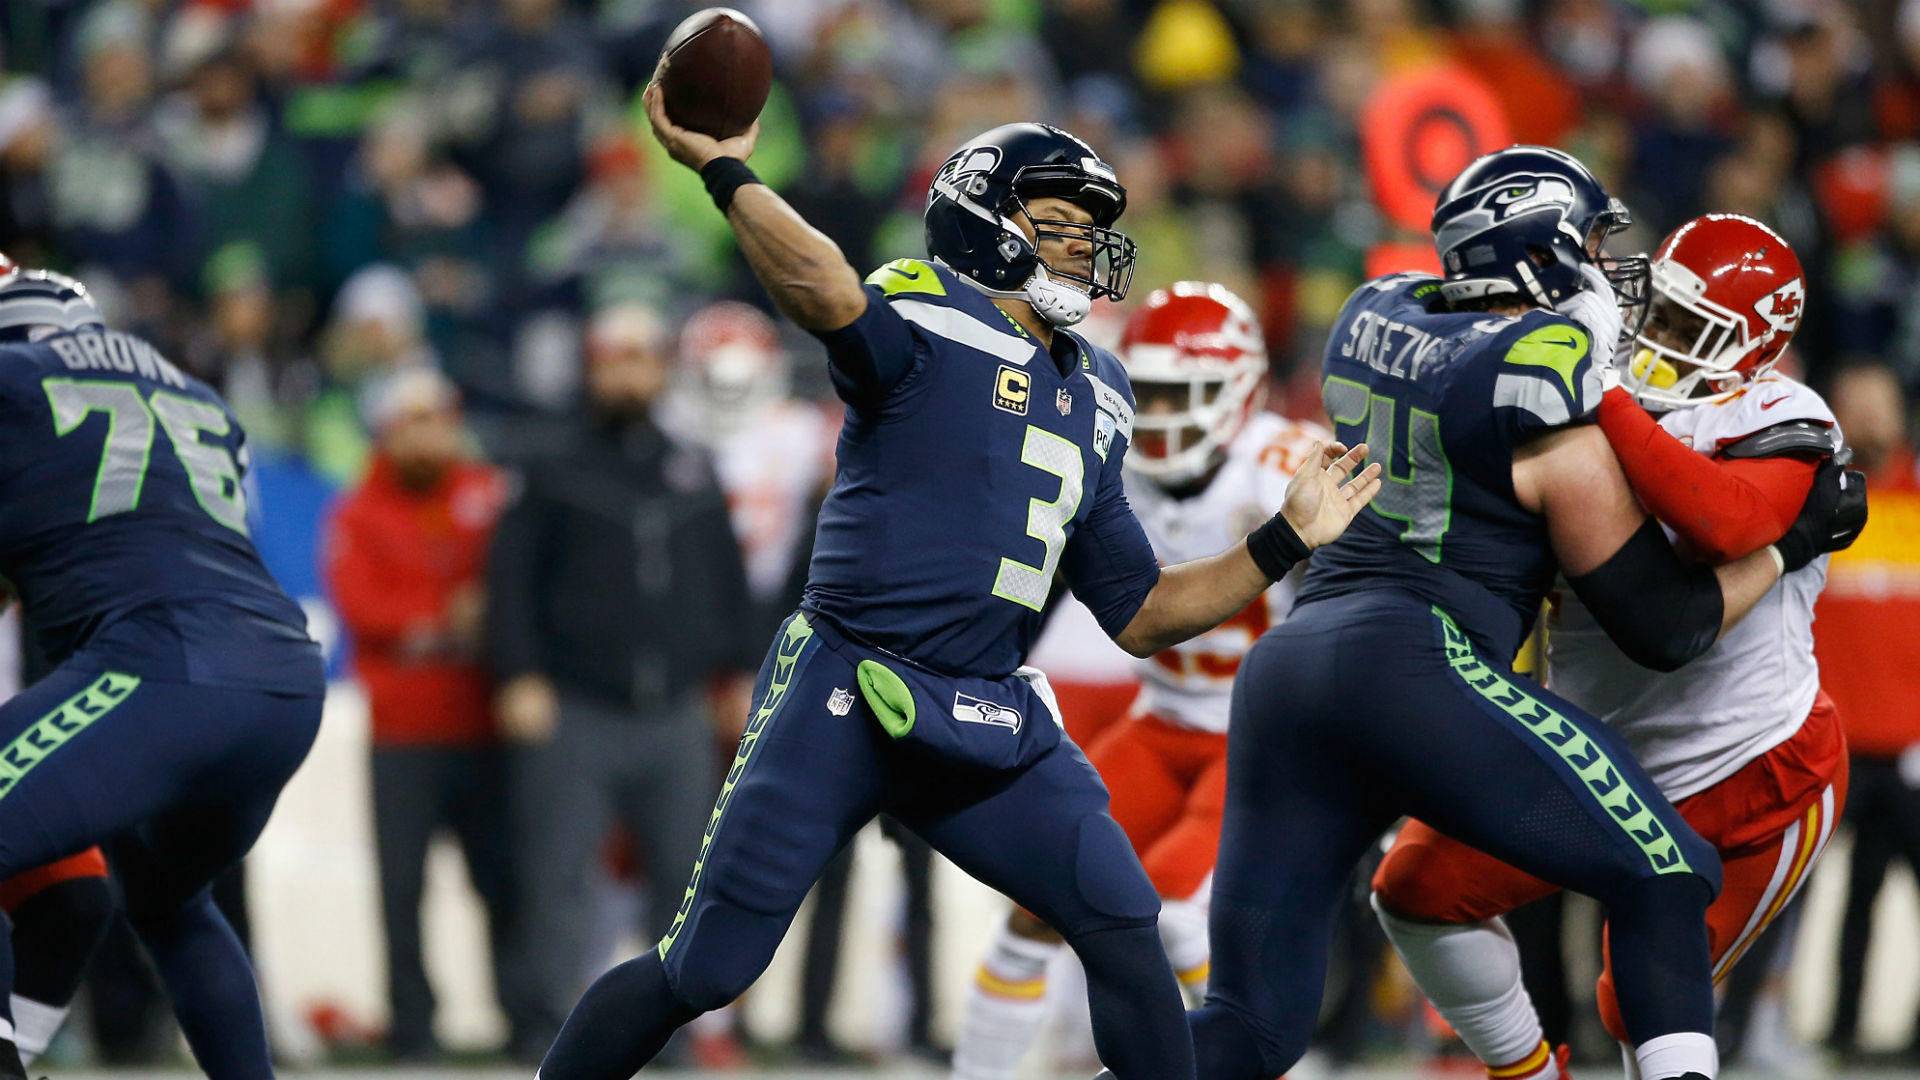 How to Watch Chiefs vs. Seahawks